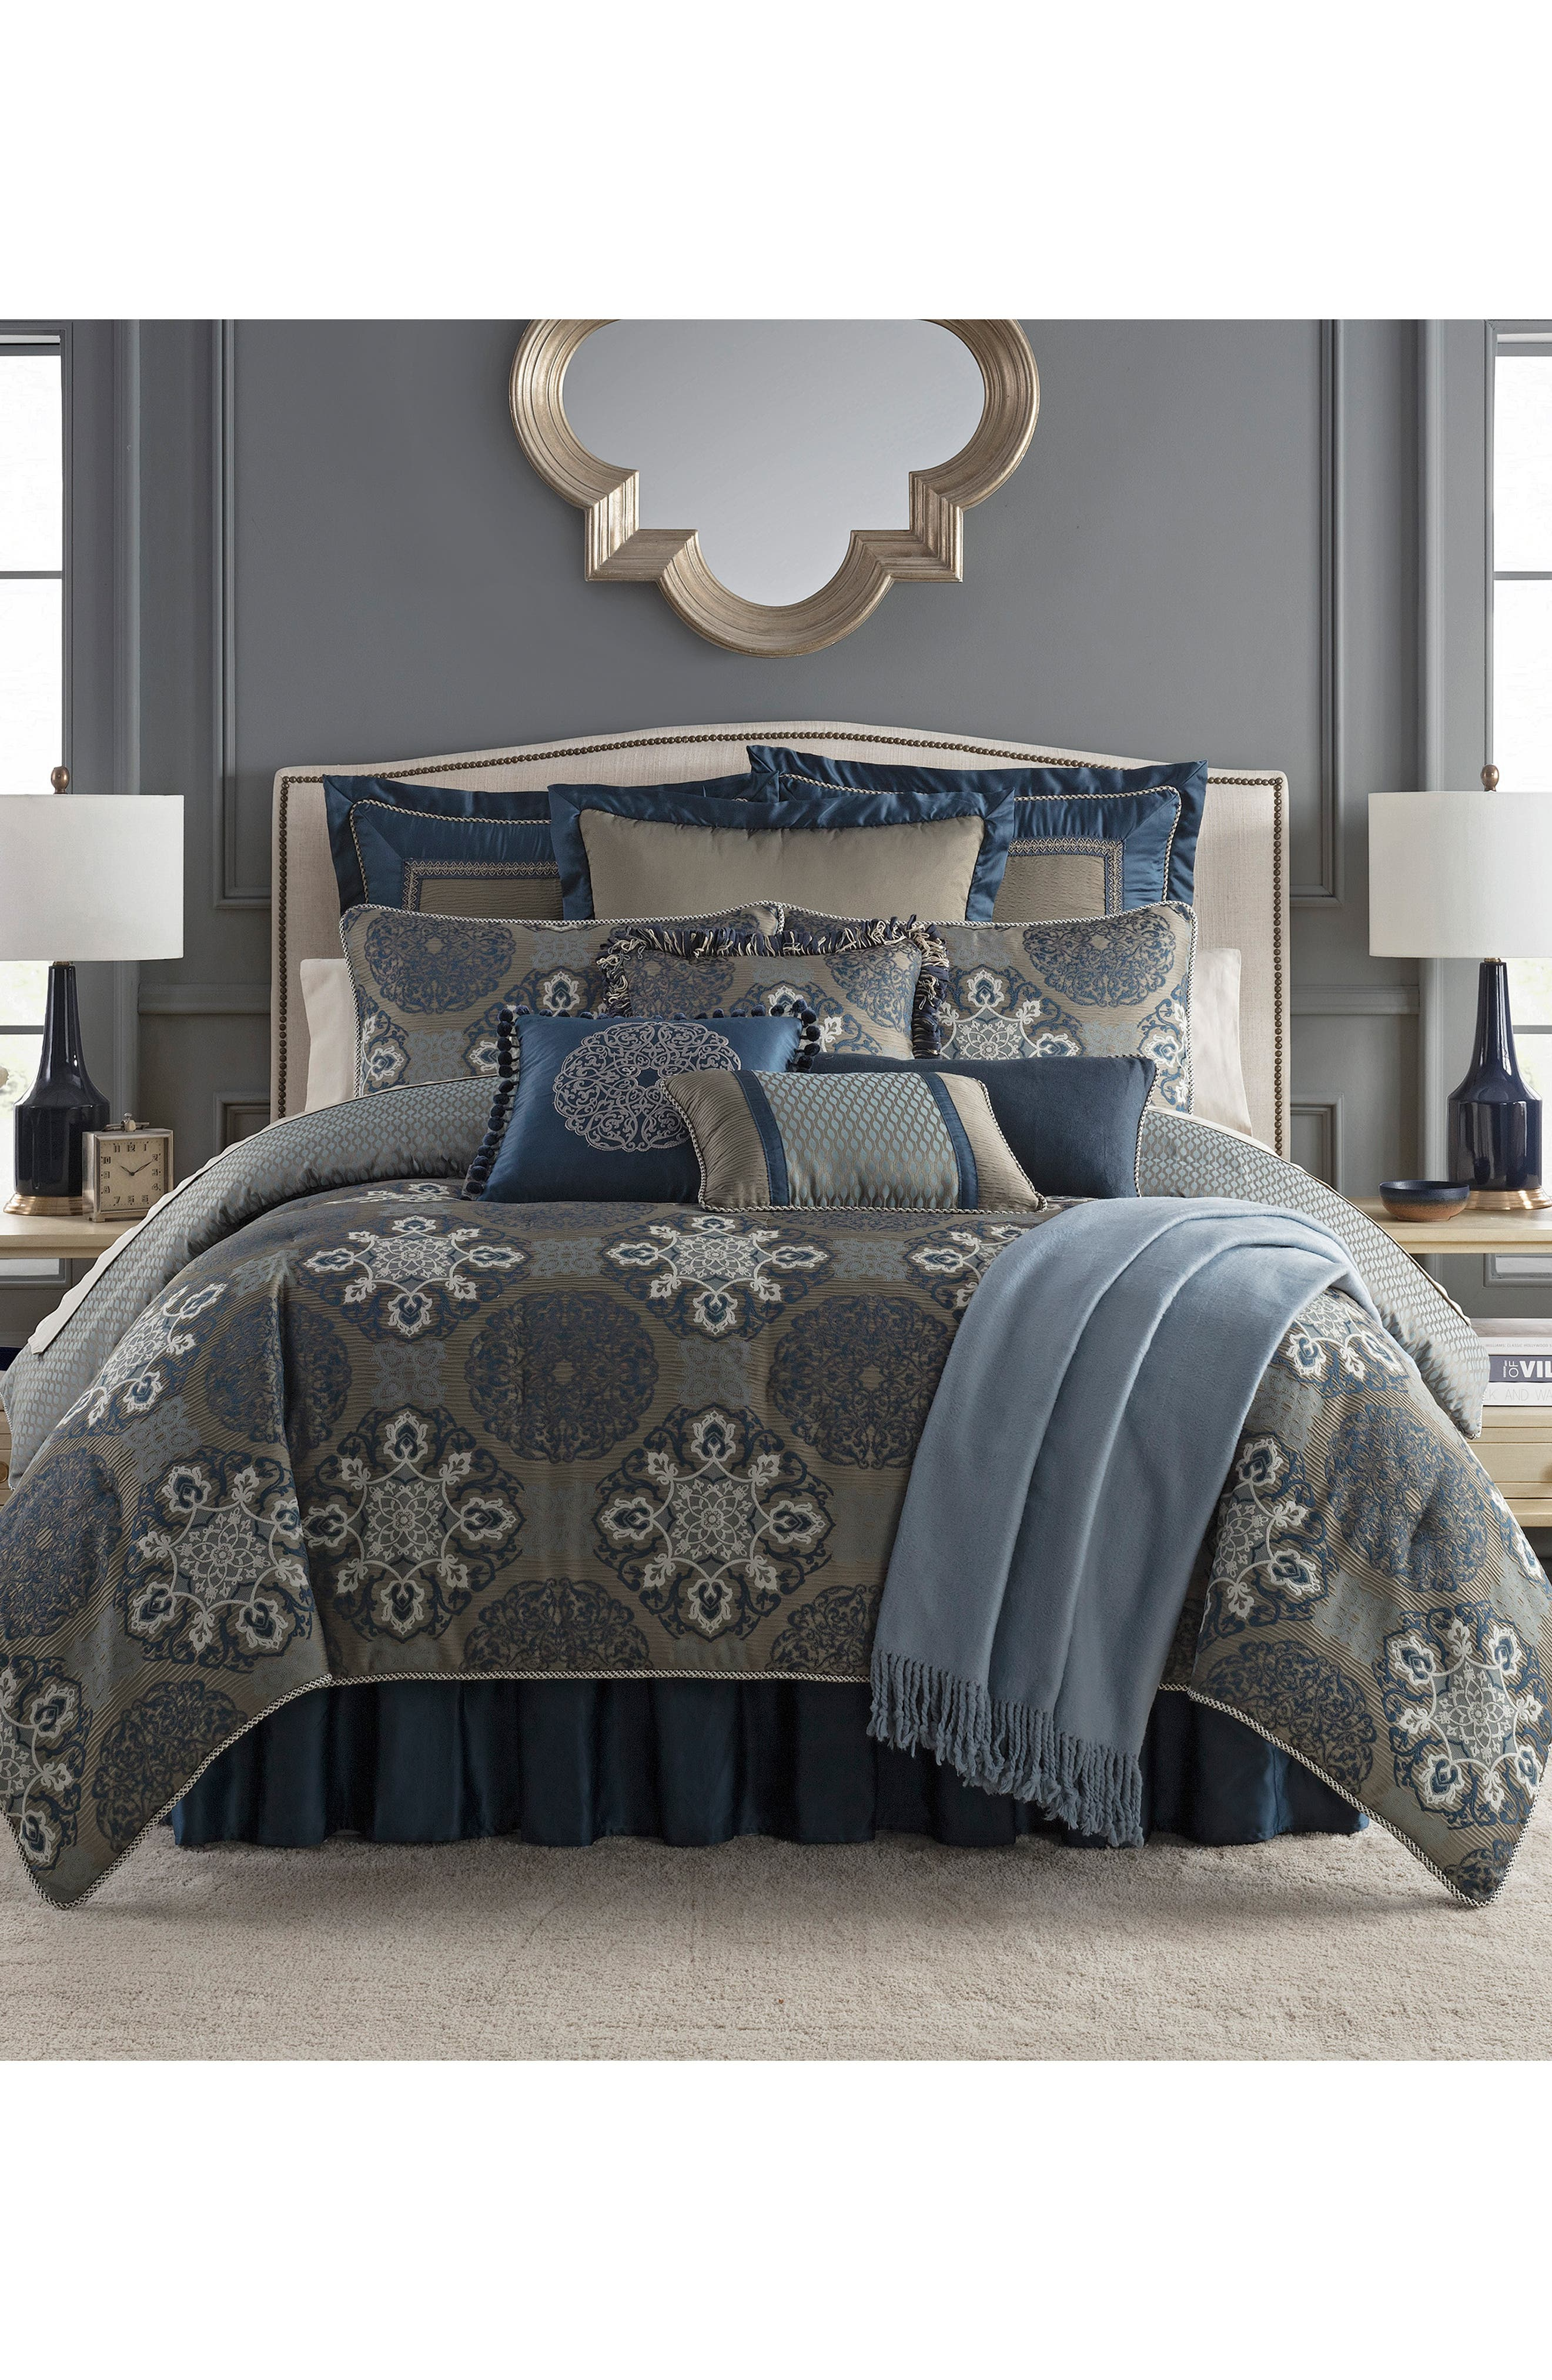 Jonet Reversible Comforter, Sham & Bedskirt Set,                             Main thumbnail 1, color,                             INDIGO